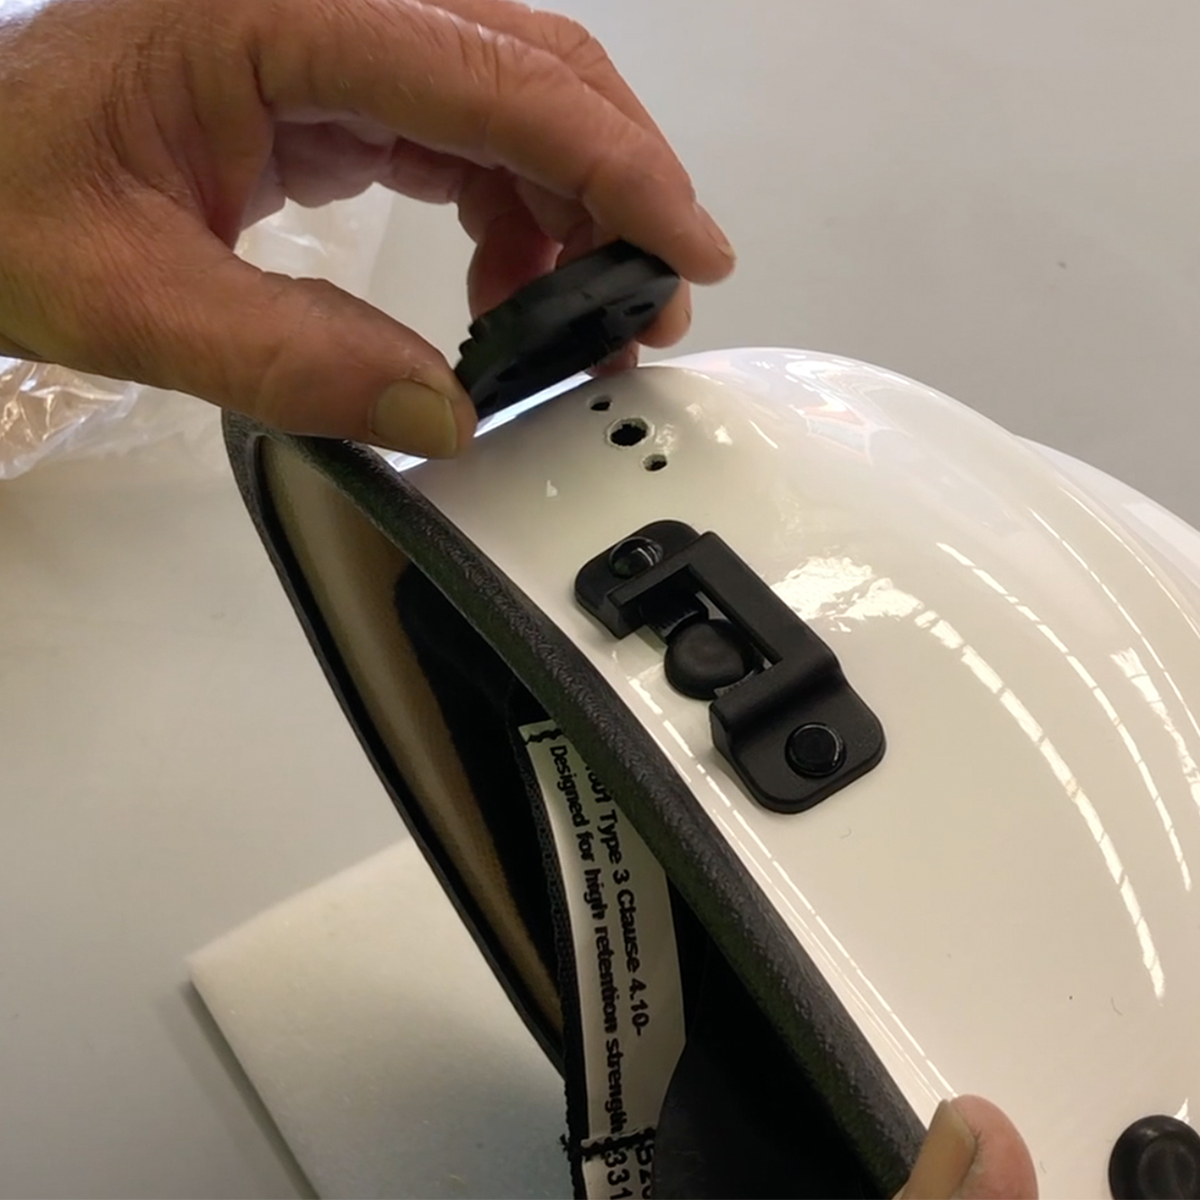 Retrofitting the HBR9 with a Clip On Visor